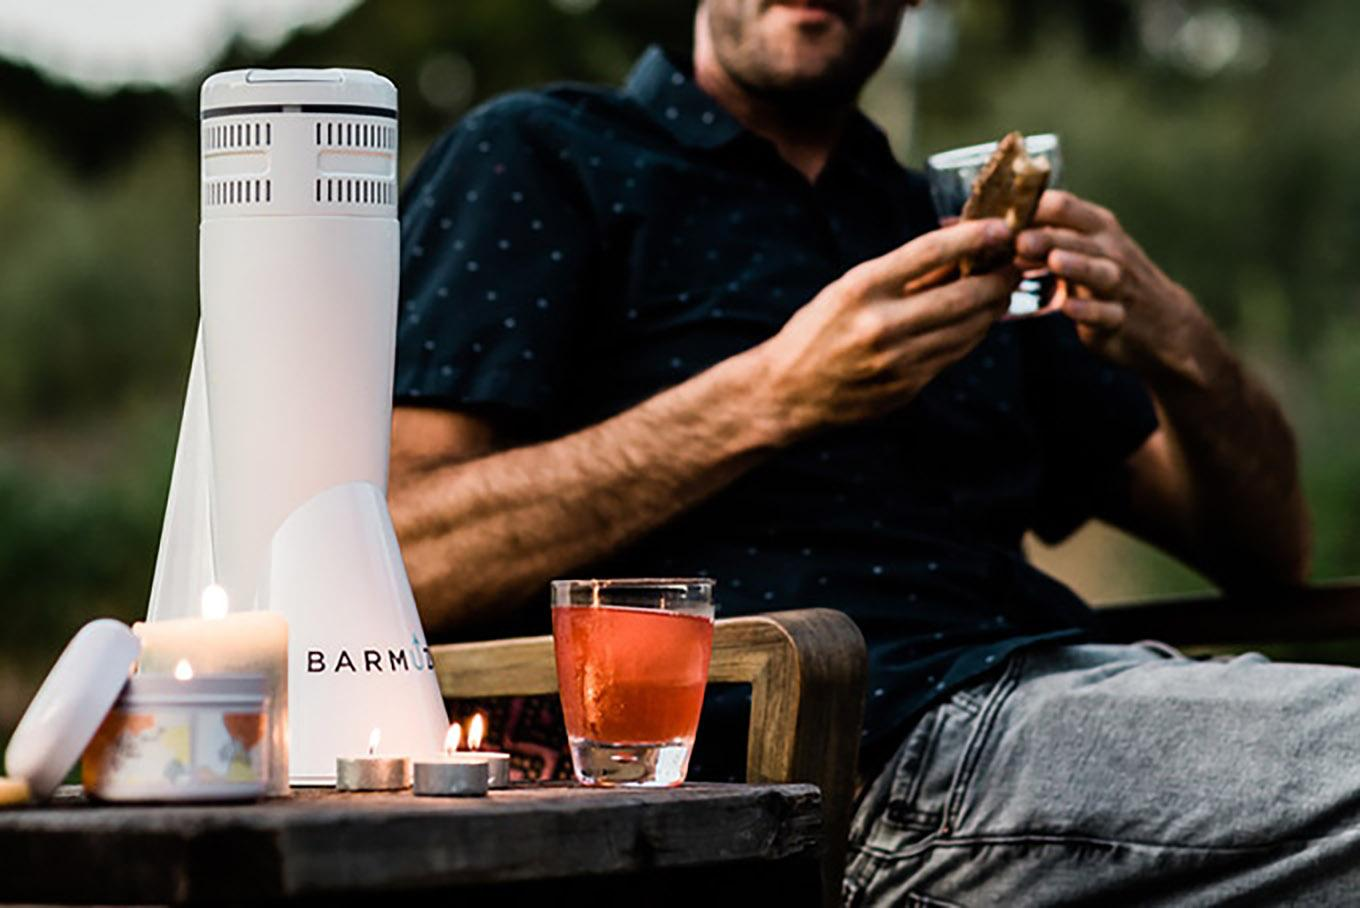 Barmuze cuts down on impurities in any alcohol for a smoother, better flavor